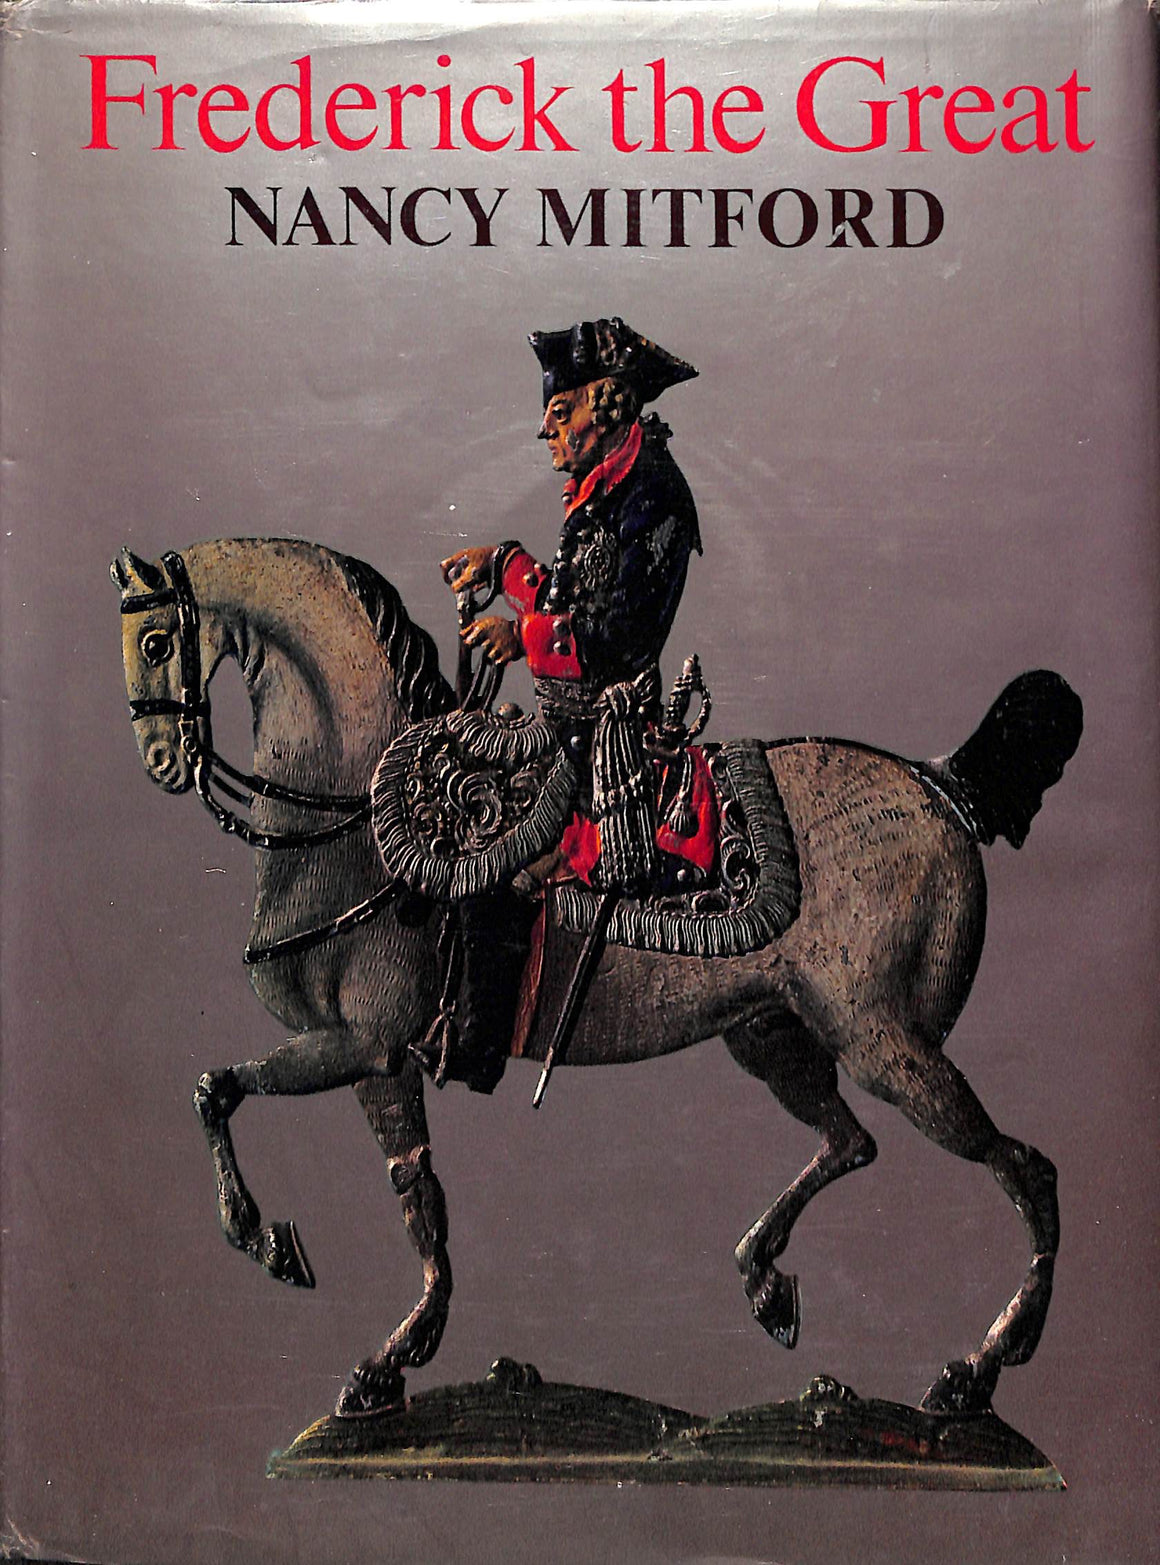 'Frederick the Great' 1970 by Nancy Mitford